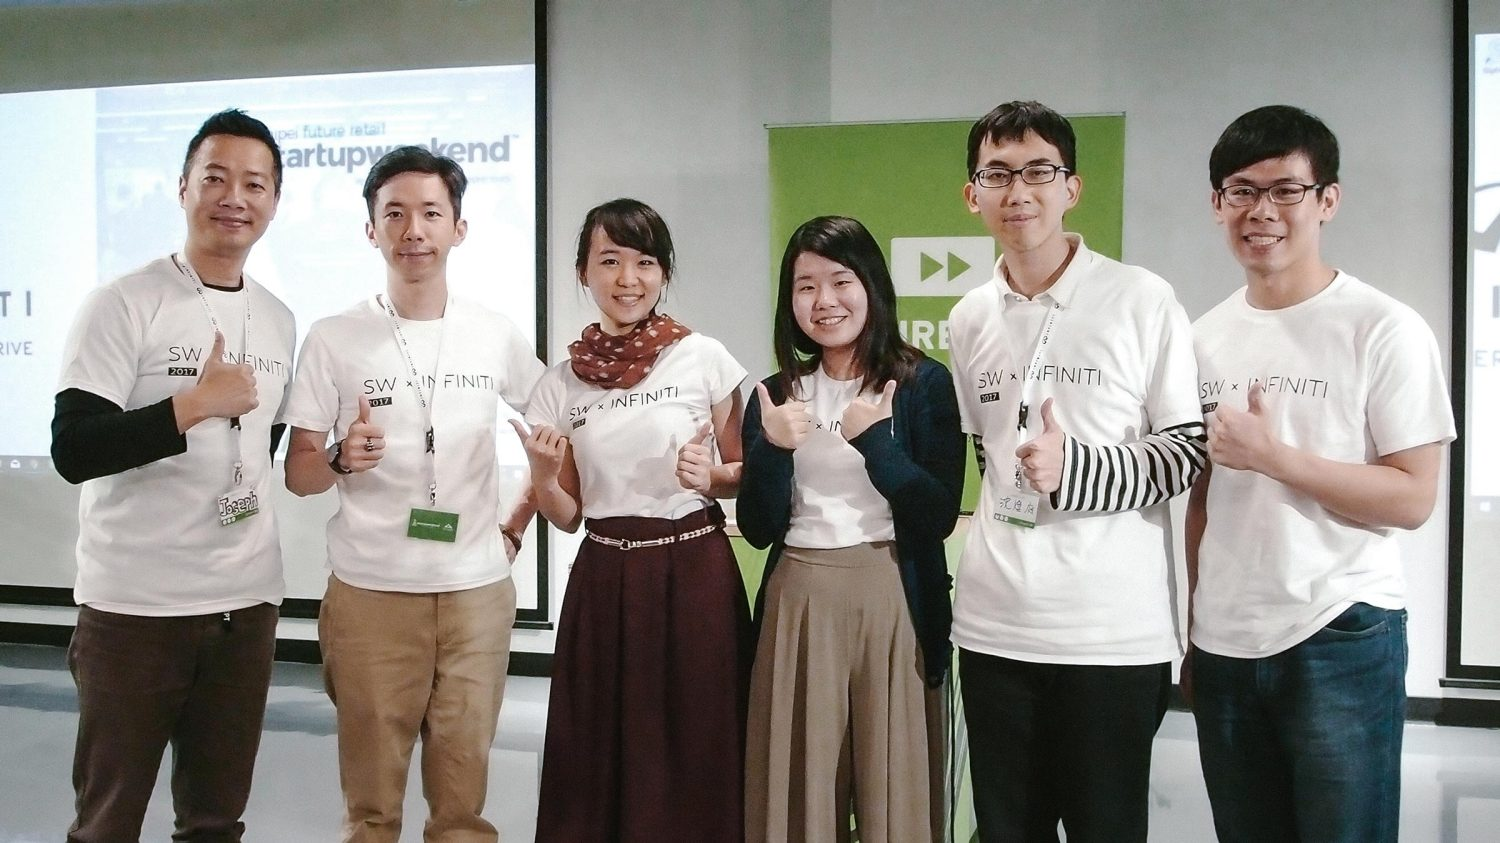 INFINITI LAB Startup Weekend | Weekend winner Sweet Heart